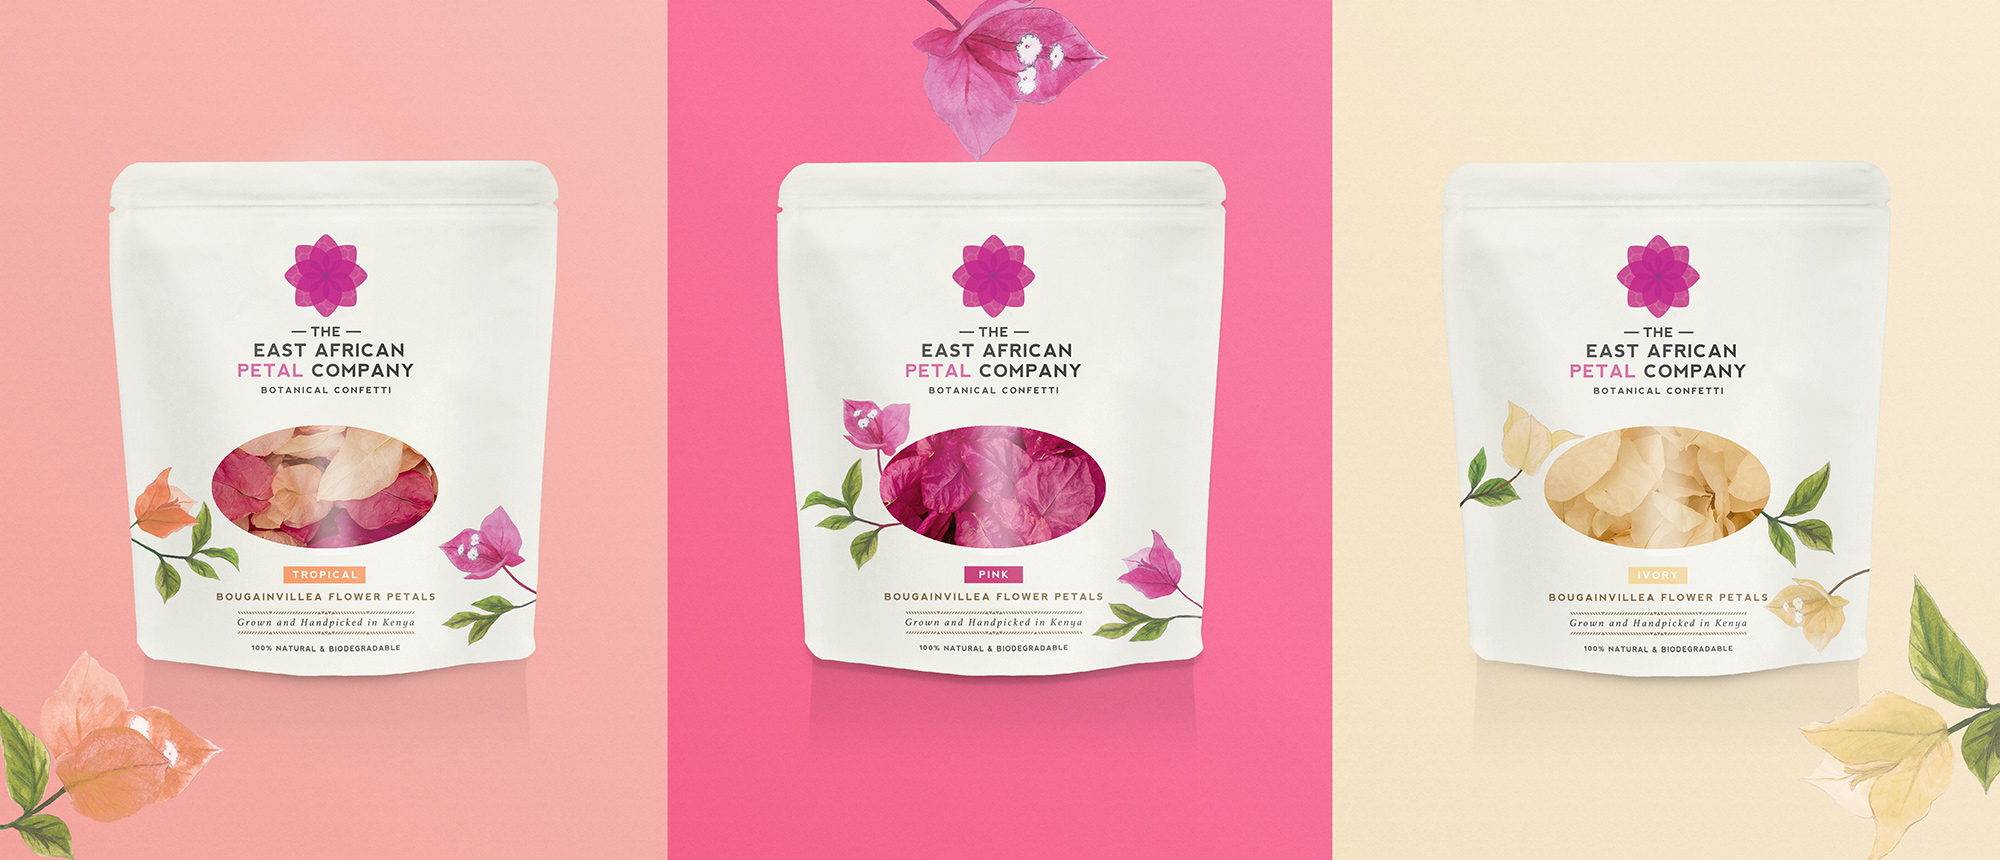 East African petal confetti packaging range